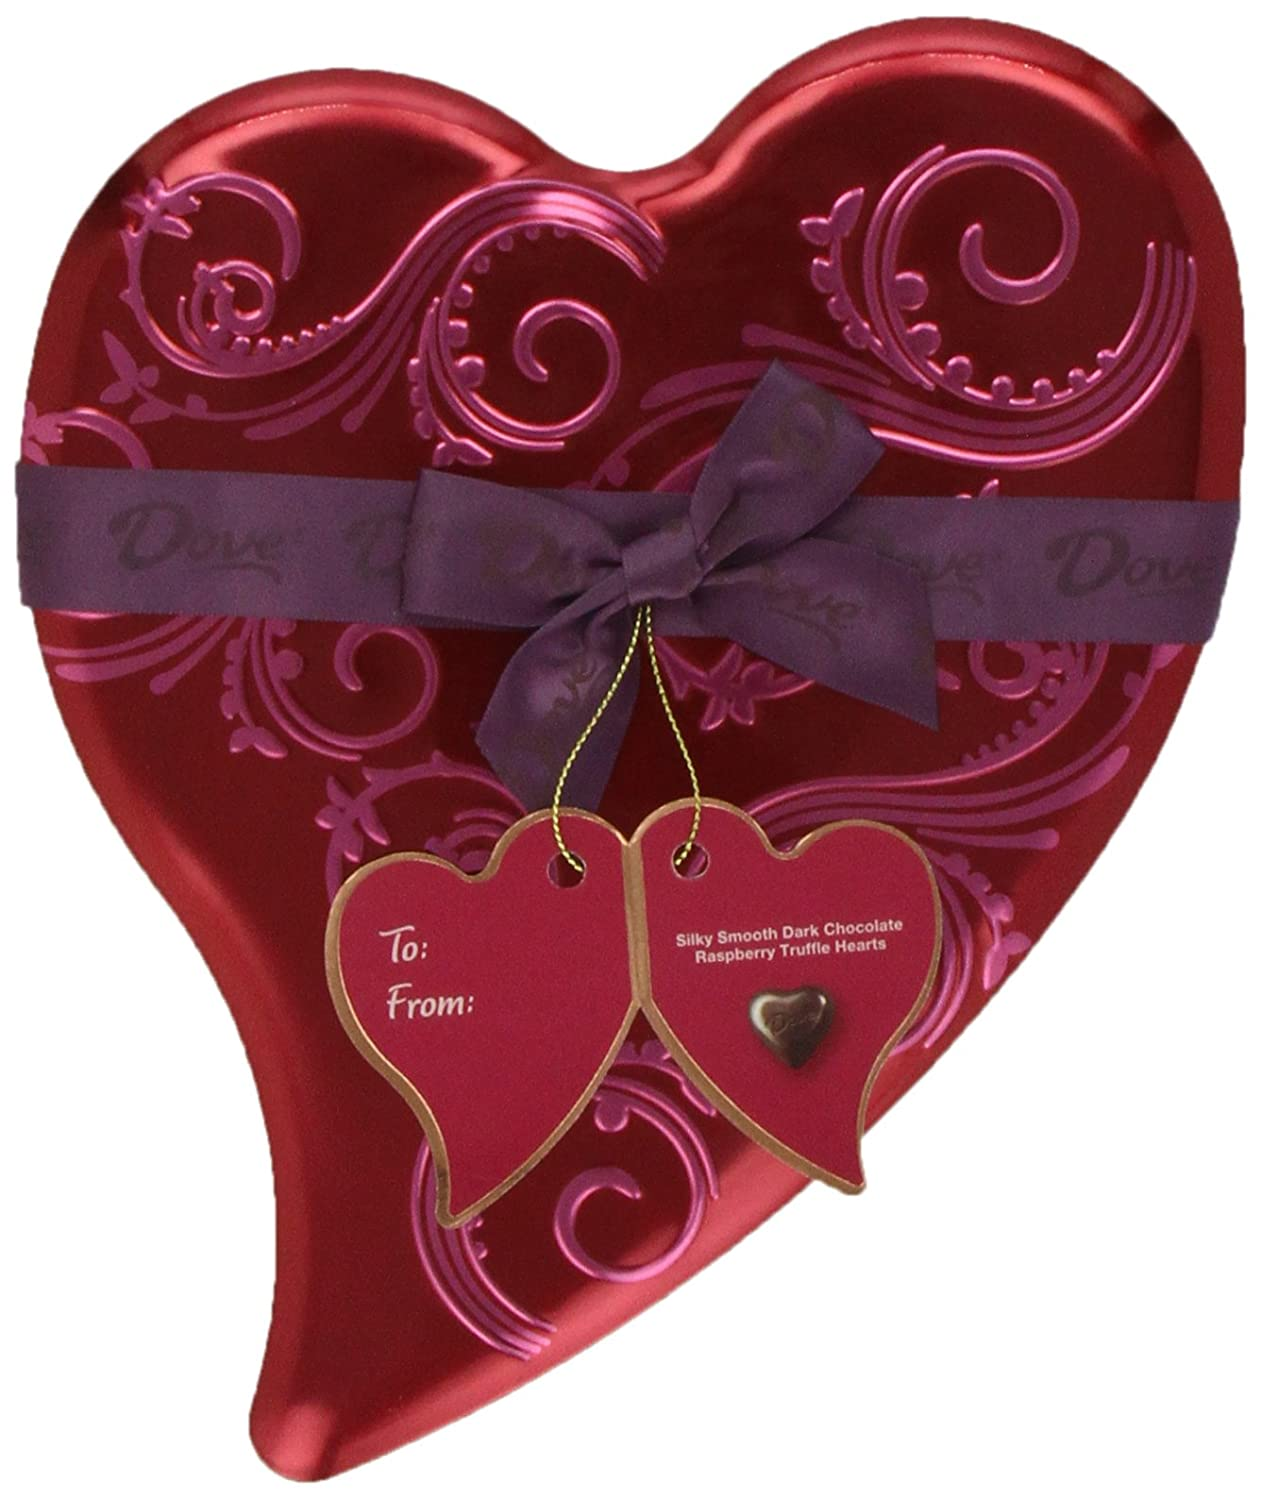 Best Excuses to Indulge In Yummilicious Dark Chocolate This Valentine's Day, Seekyt